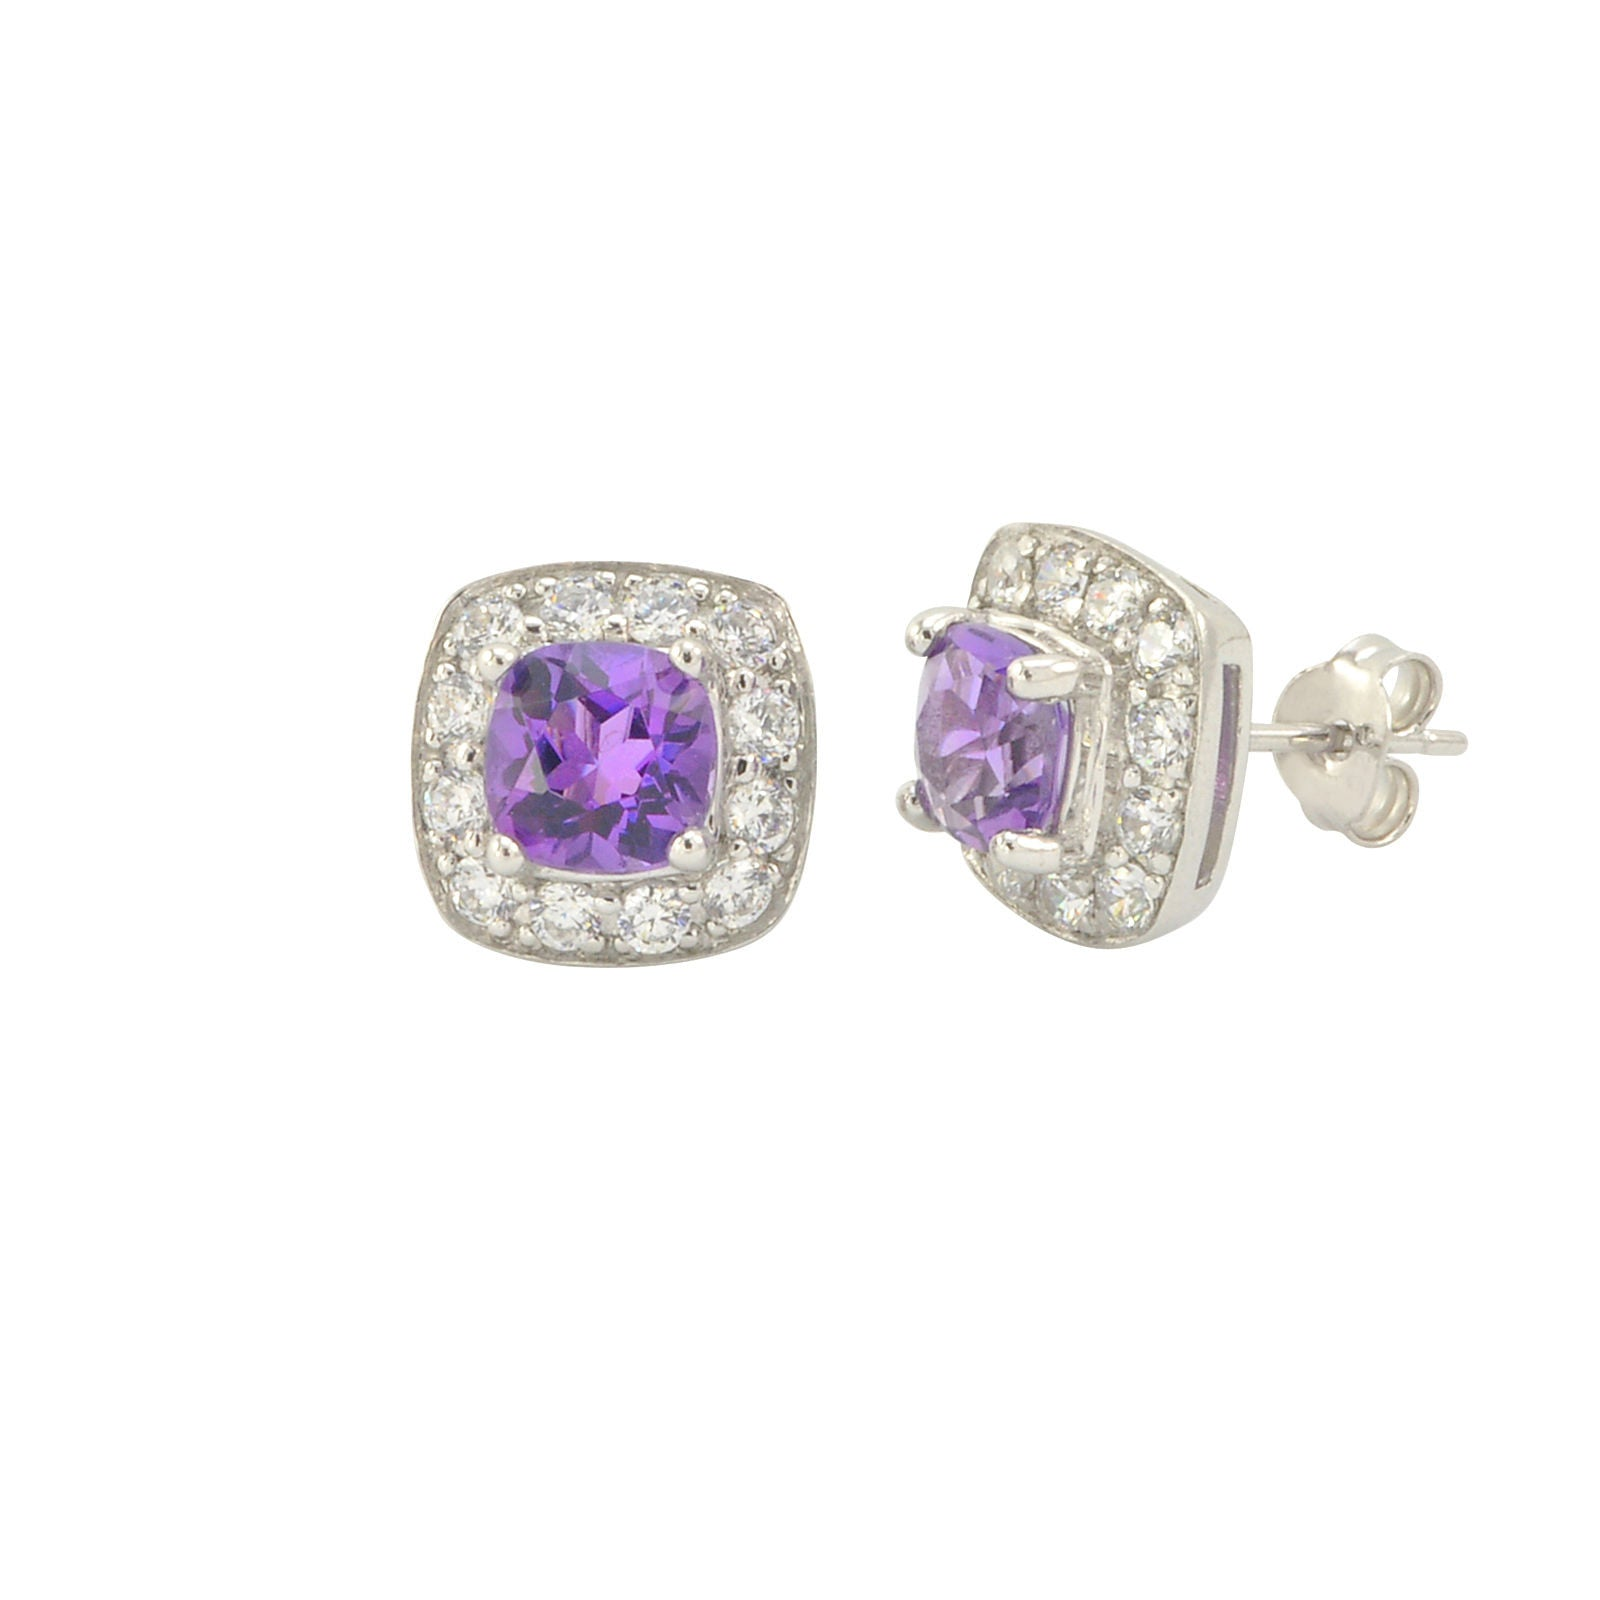 925 Sterling Silver Square 6Mm Ear Studs Cz Amethyst